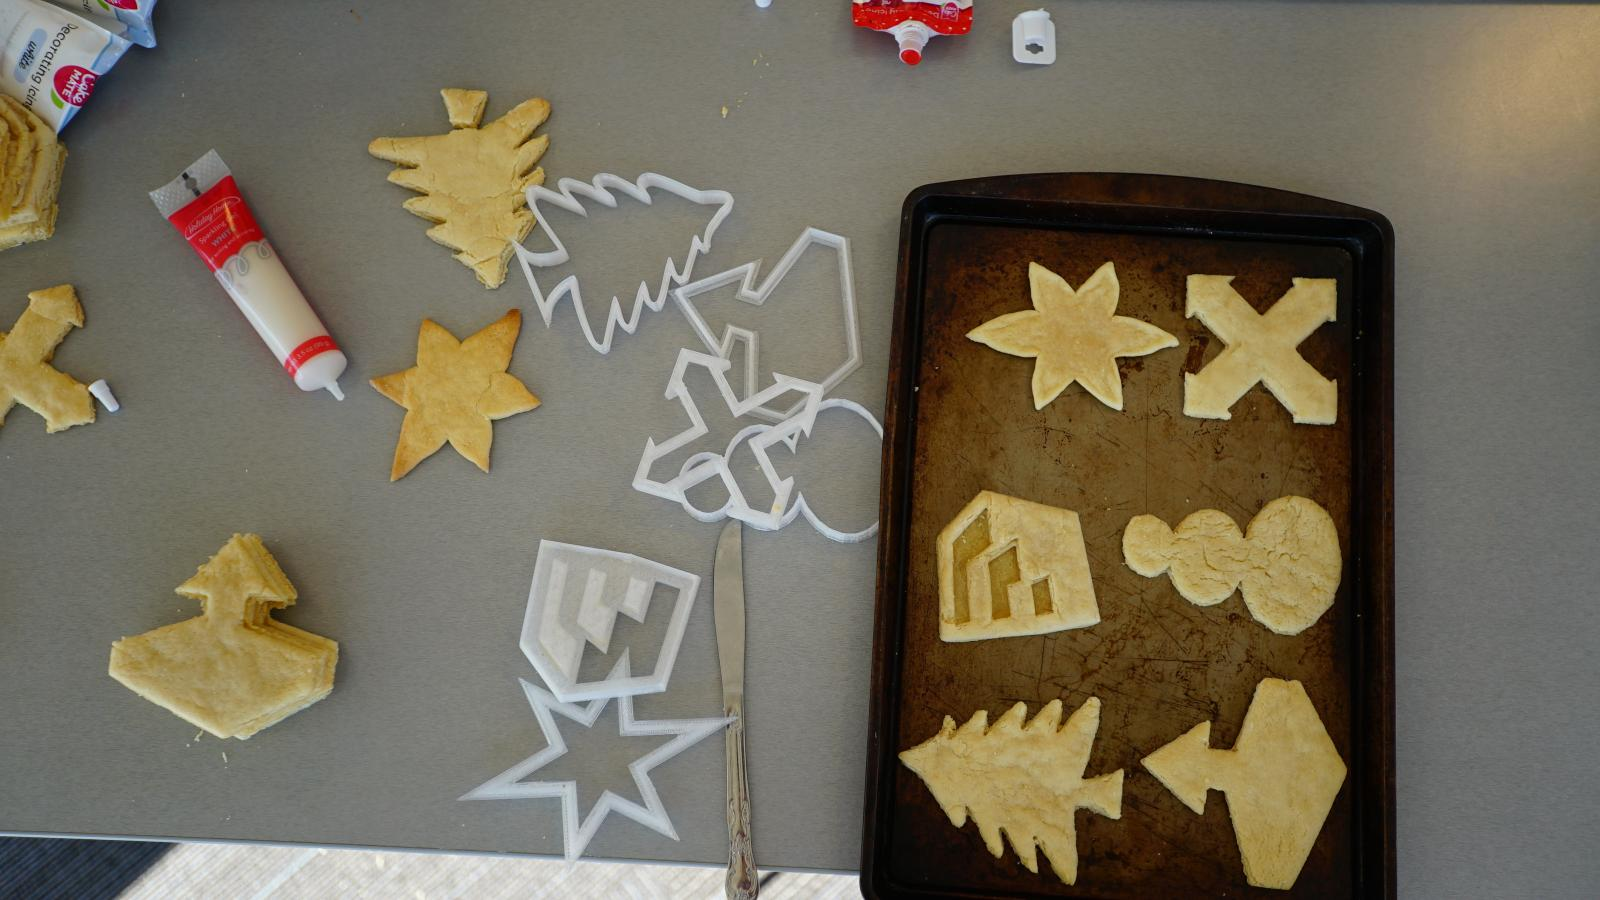 SketchUp cookies ready for frosting